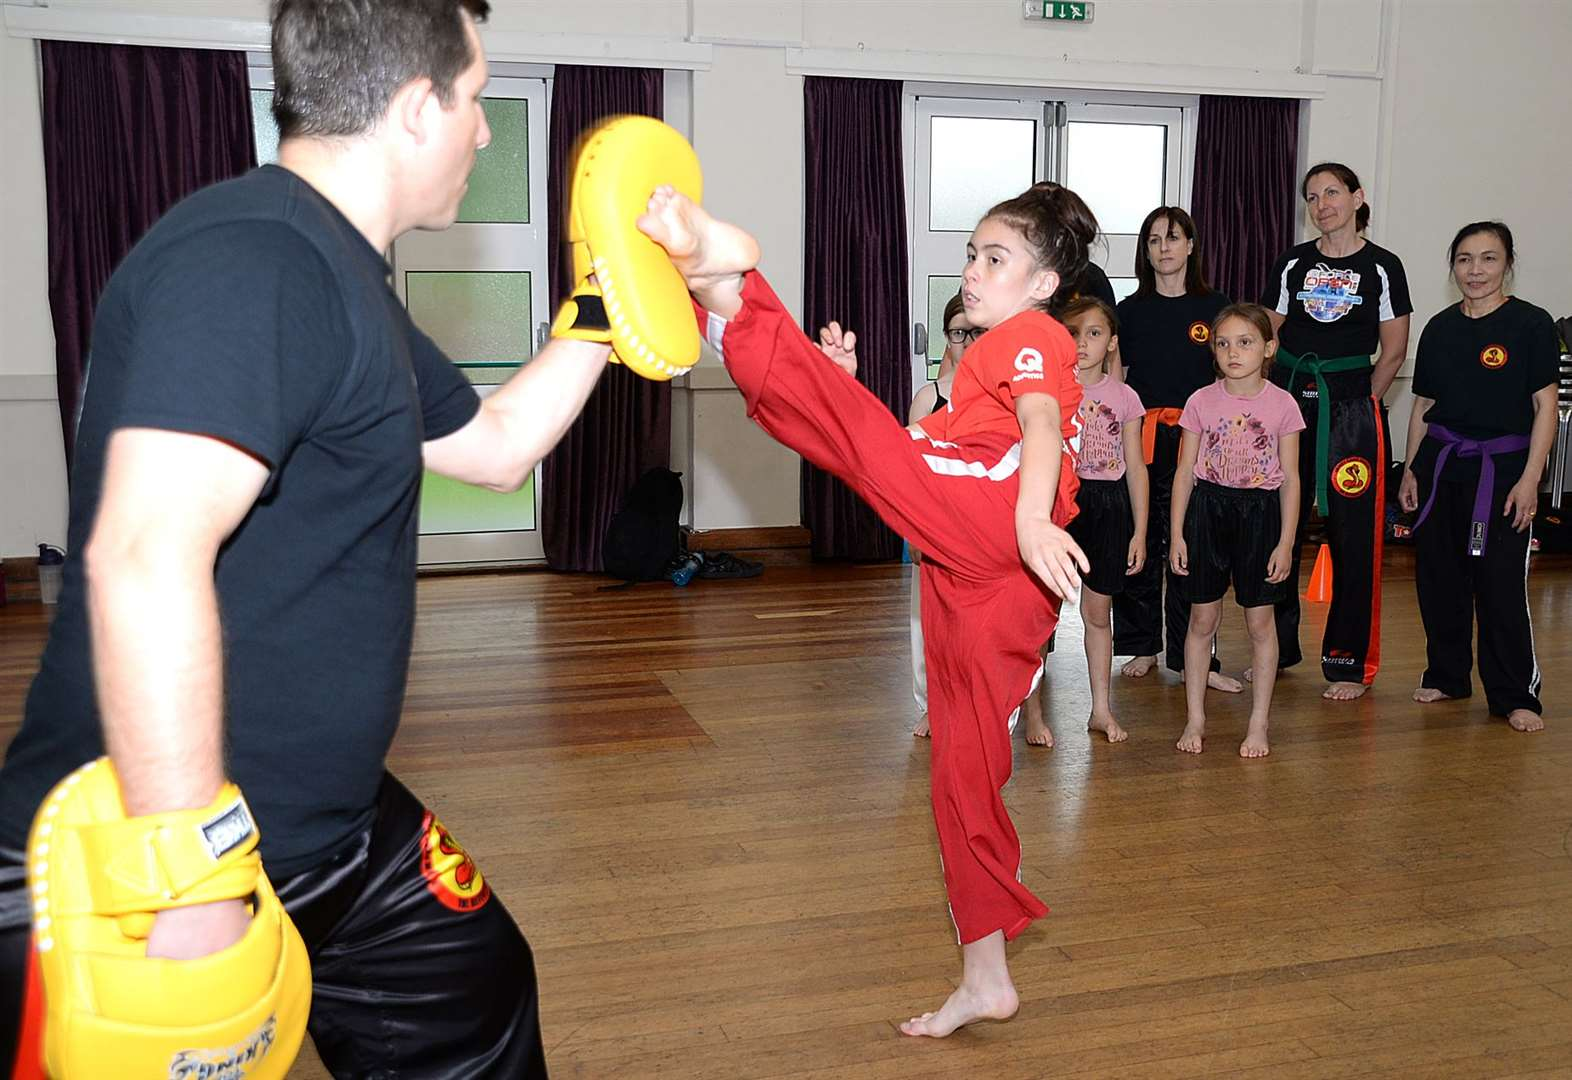 Karate school offers free self-defence classes after spate of incidents